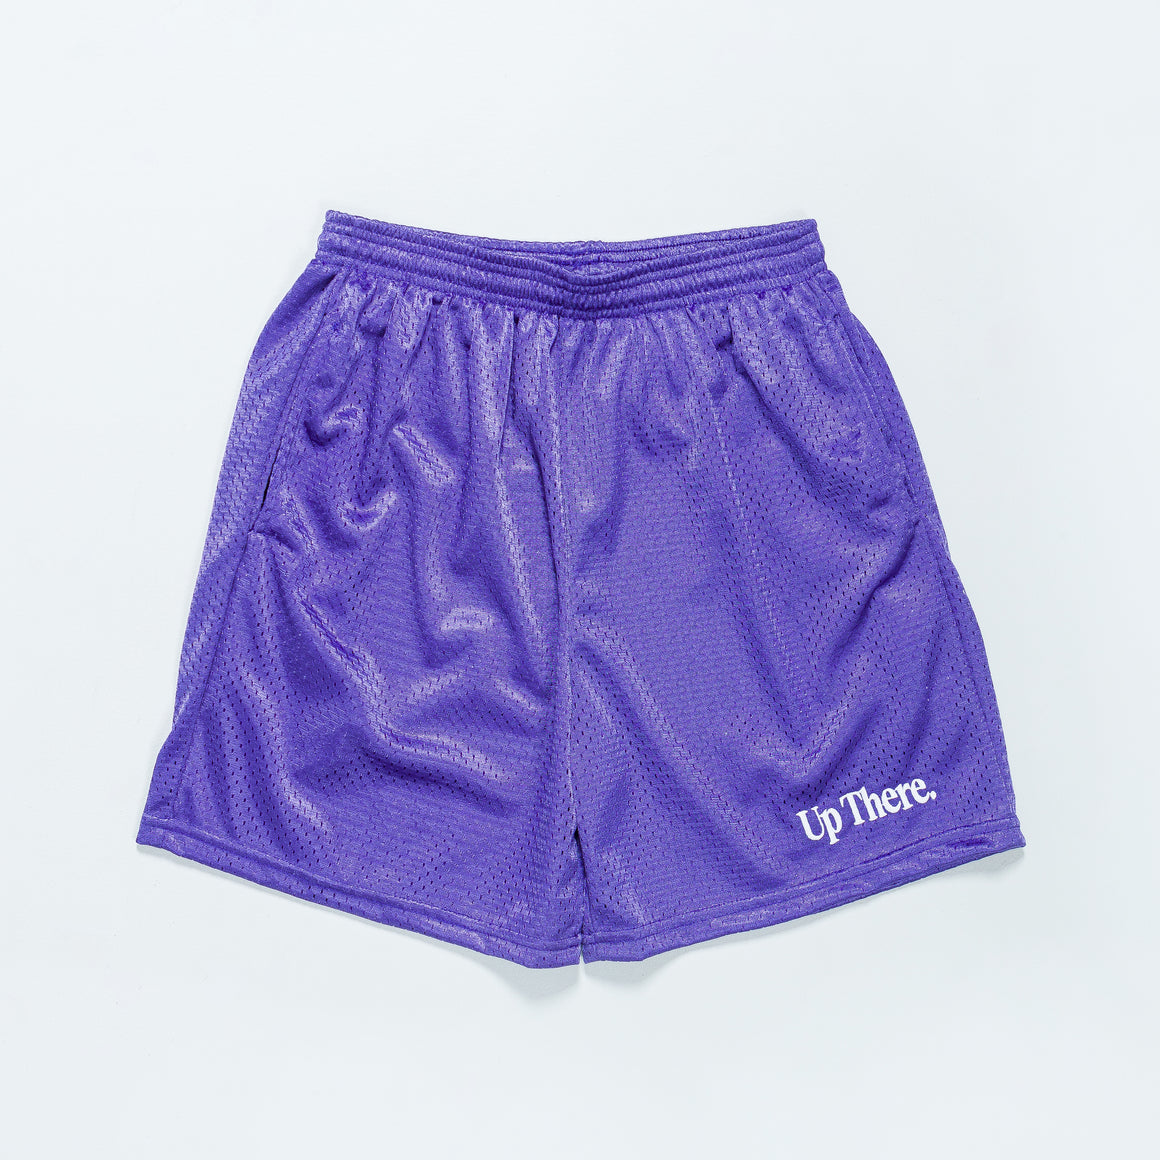 Up There - Baller Shorts - Purple - Up There